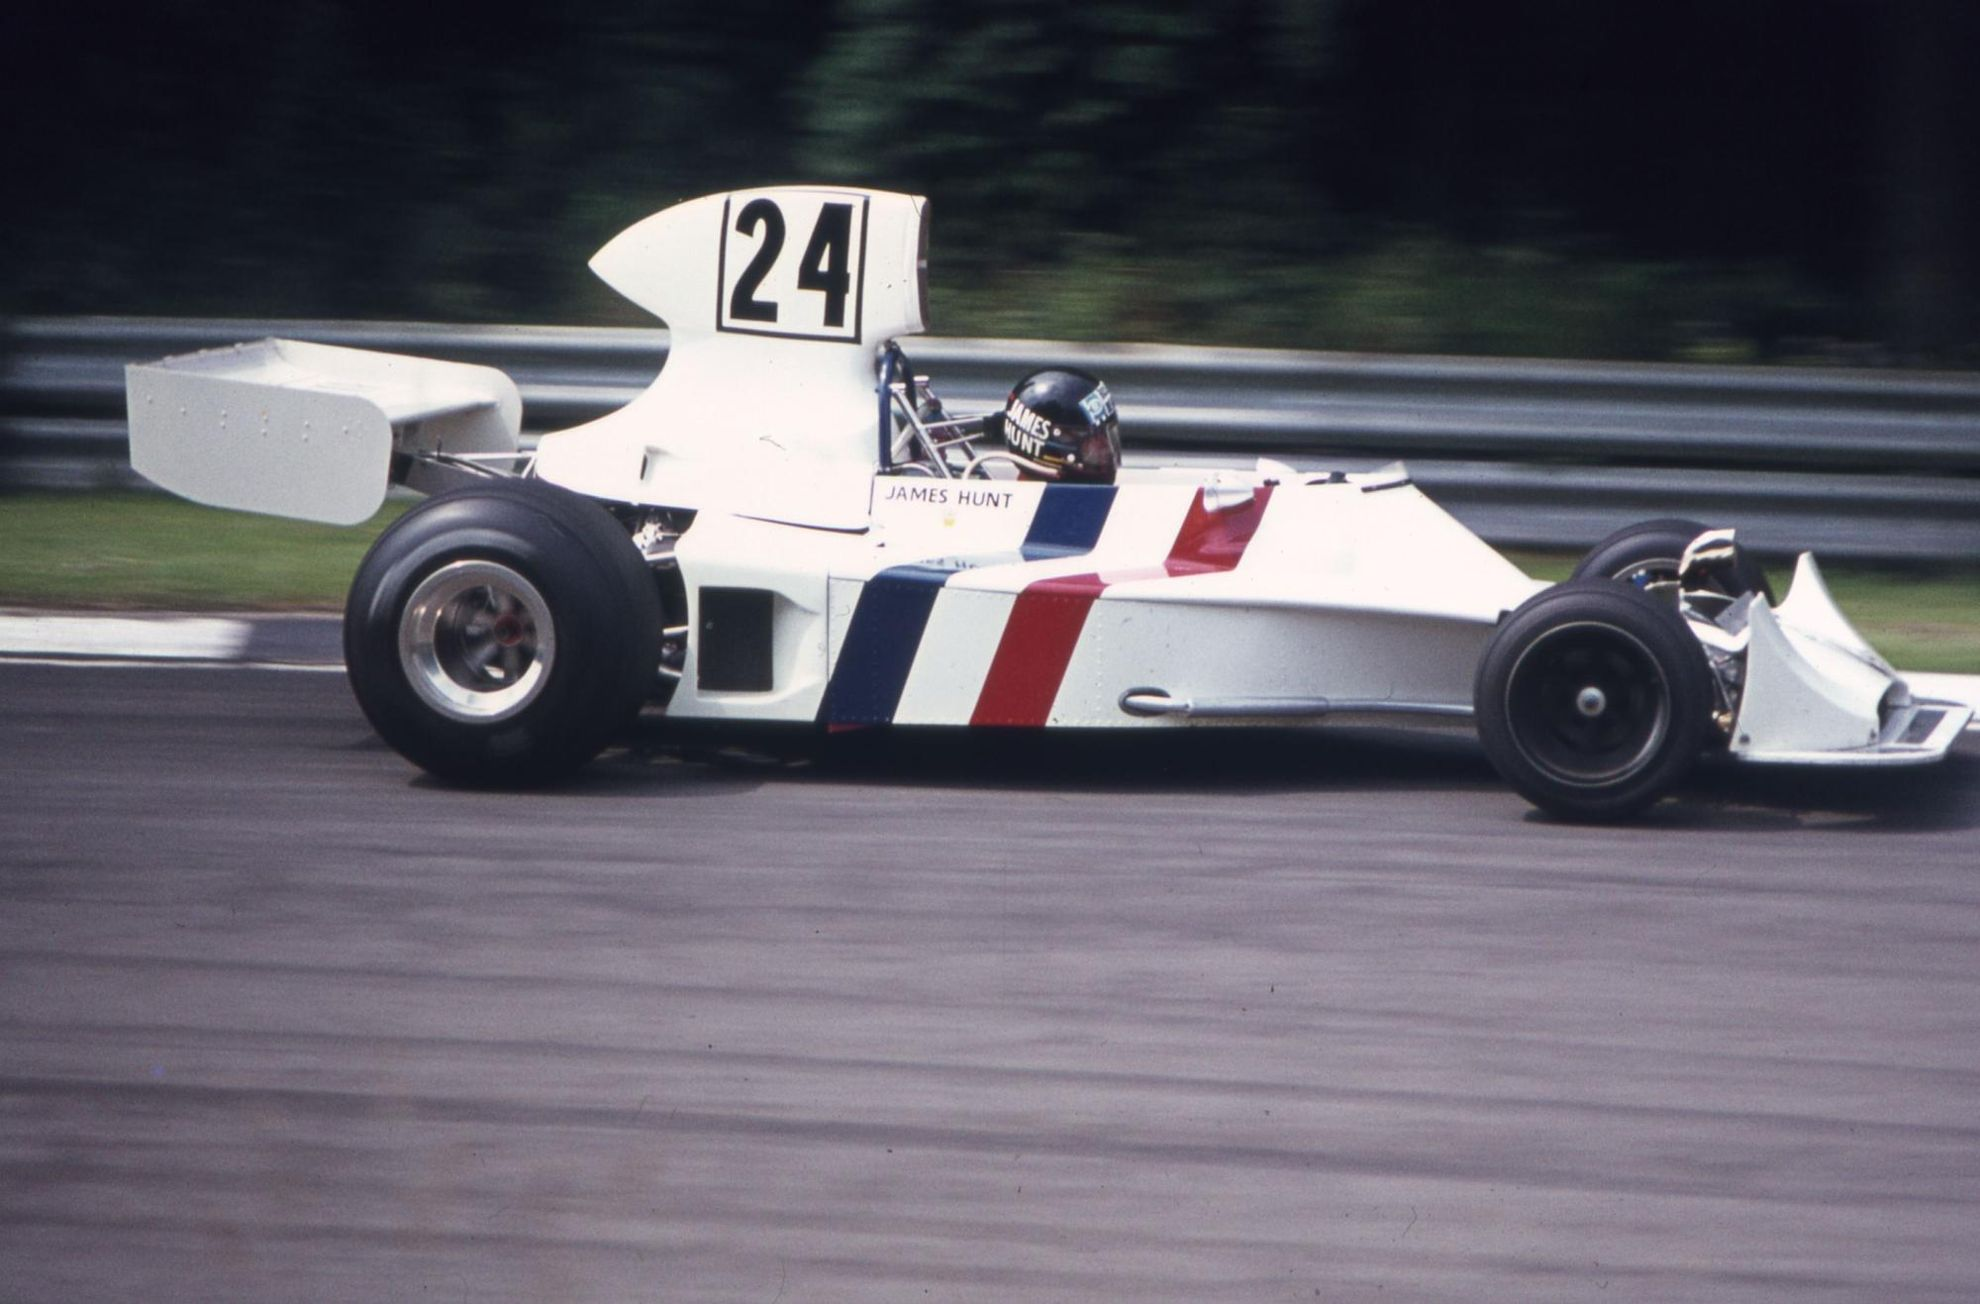 James_Hunt_1974_Hesketh_308_F1_car